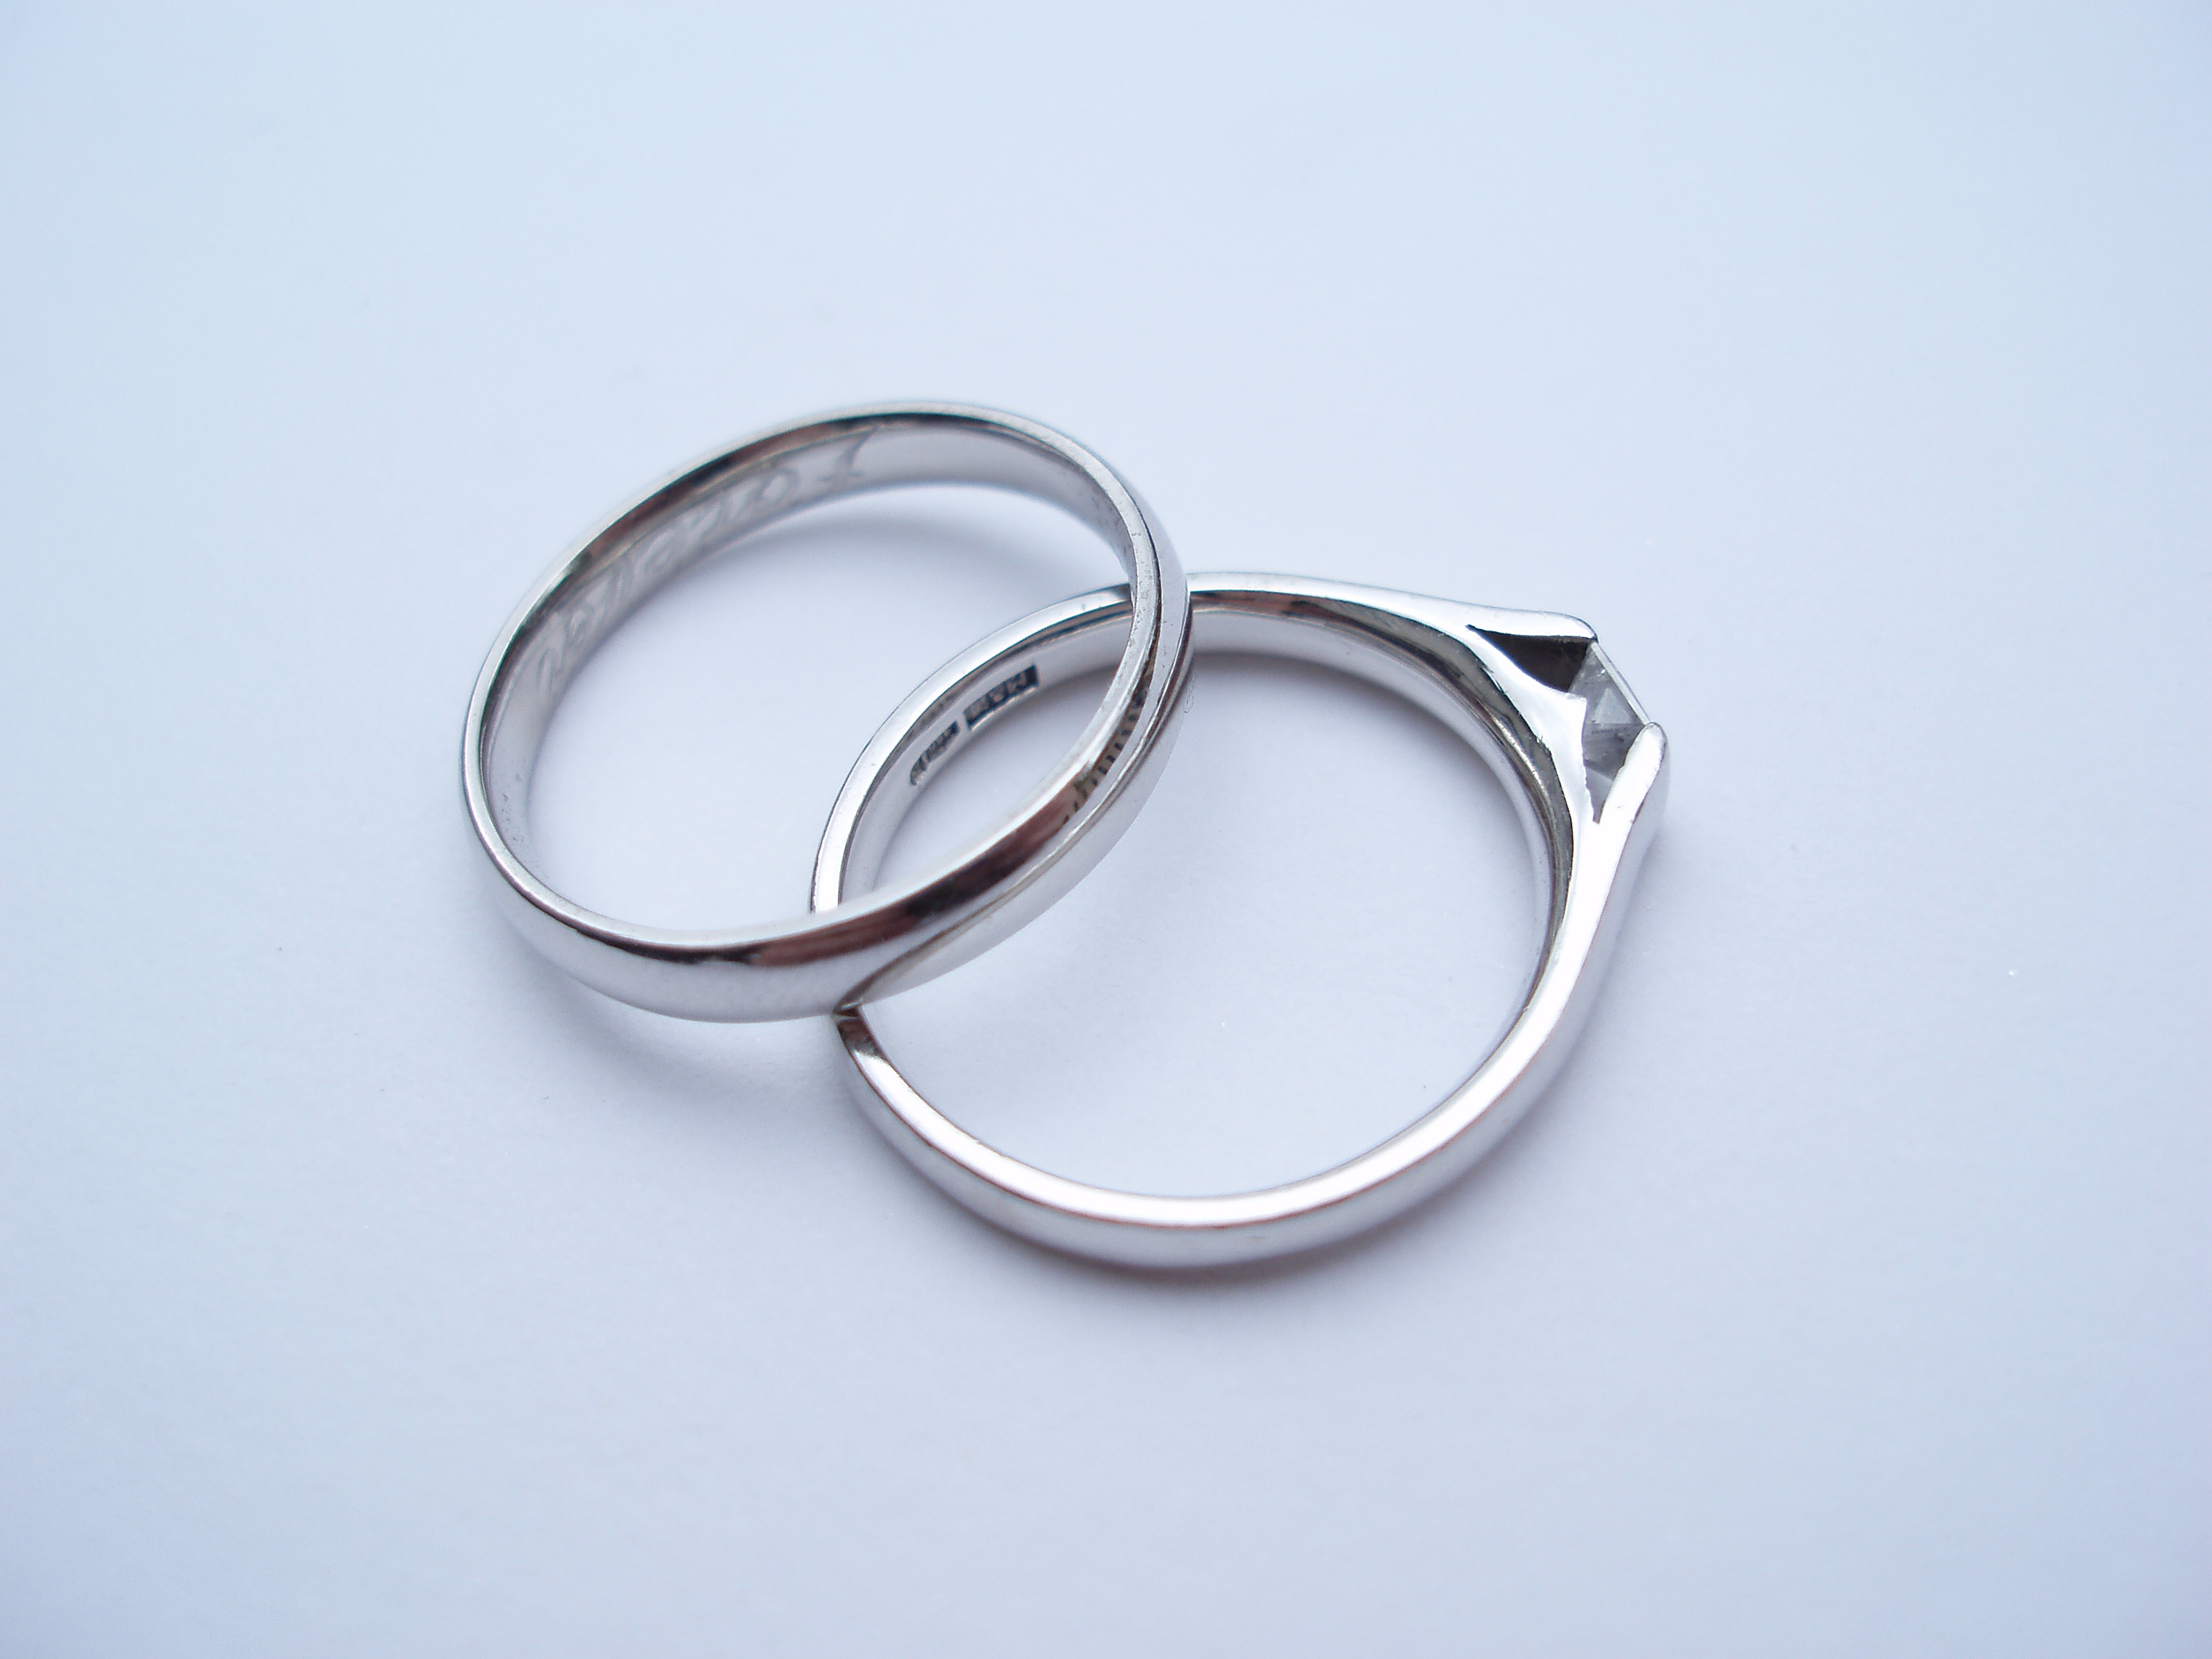 silverweddingrings silver wedding ring the symbol of everlasting love two silver wedding rings